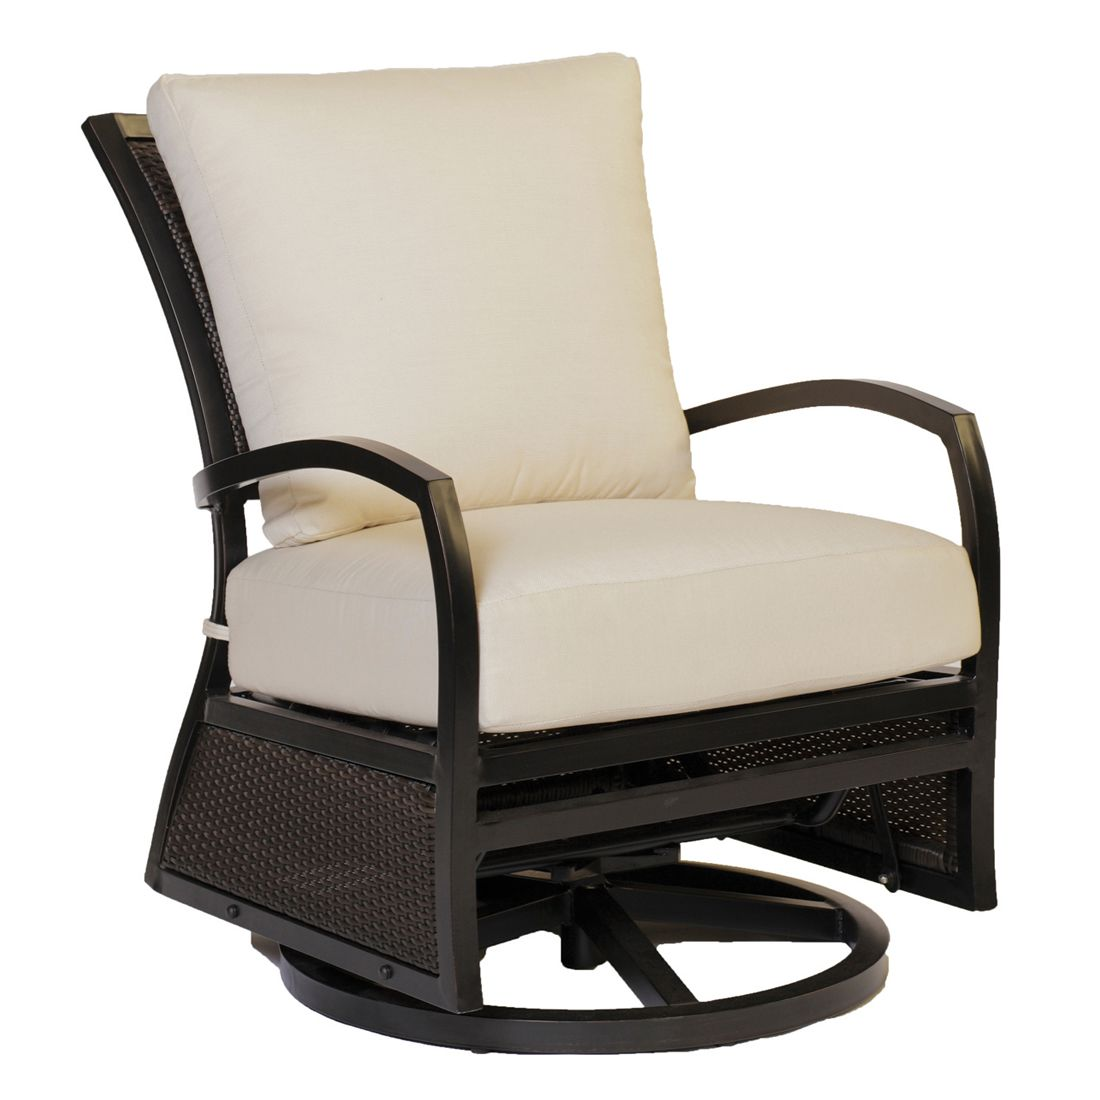 about beautiful glider outdoor additional design chair remodel modern with